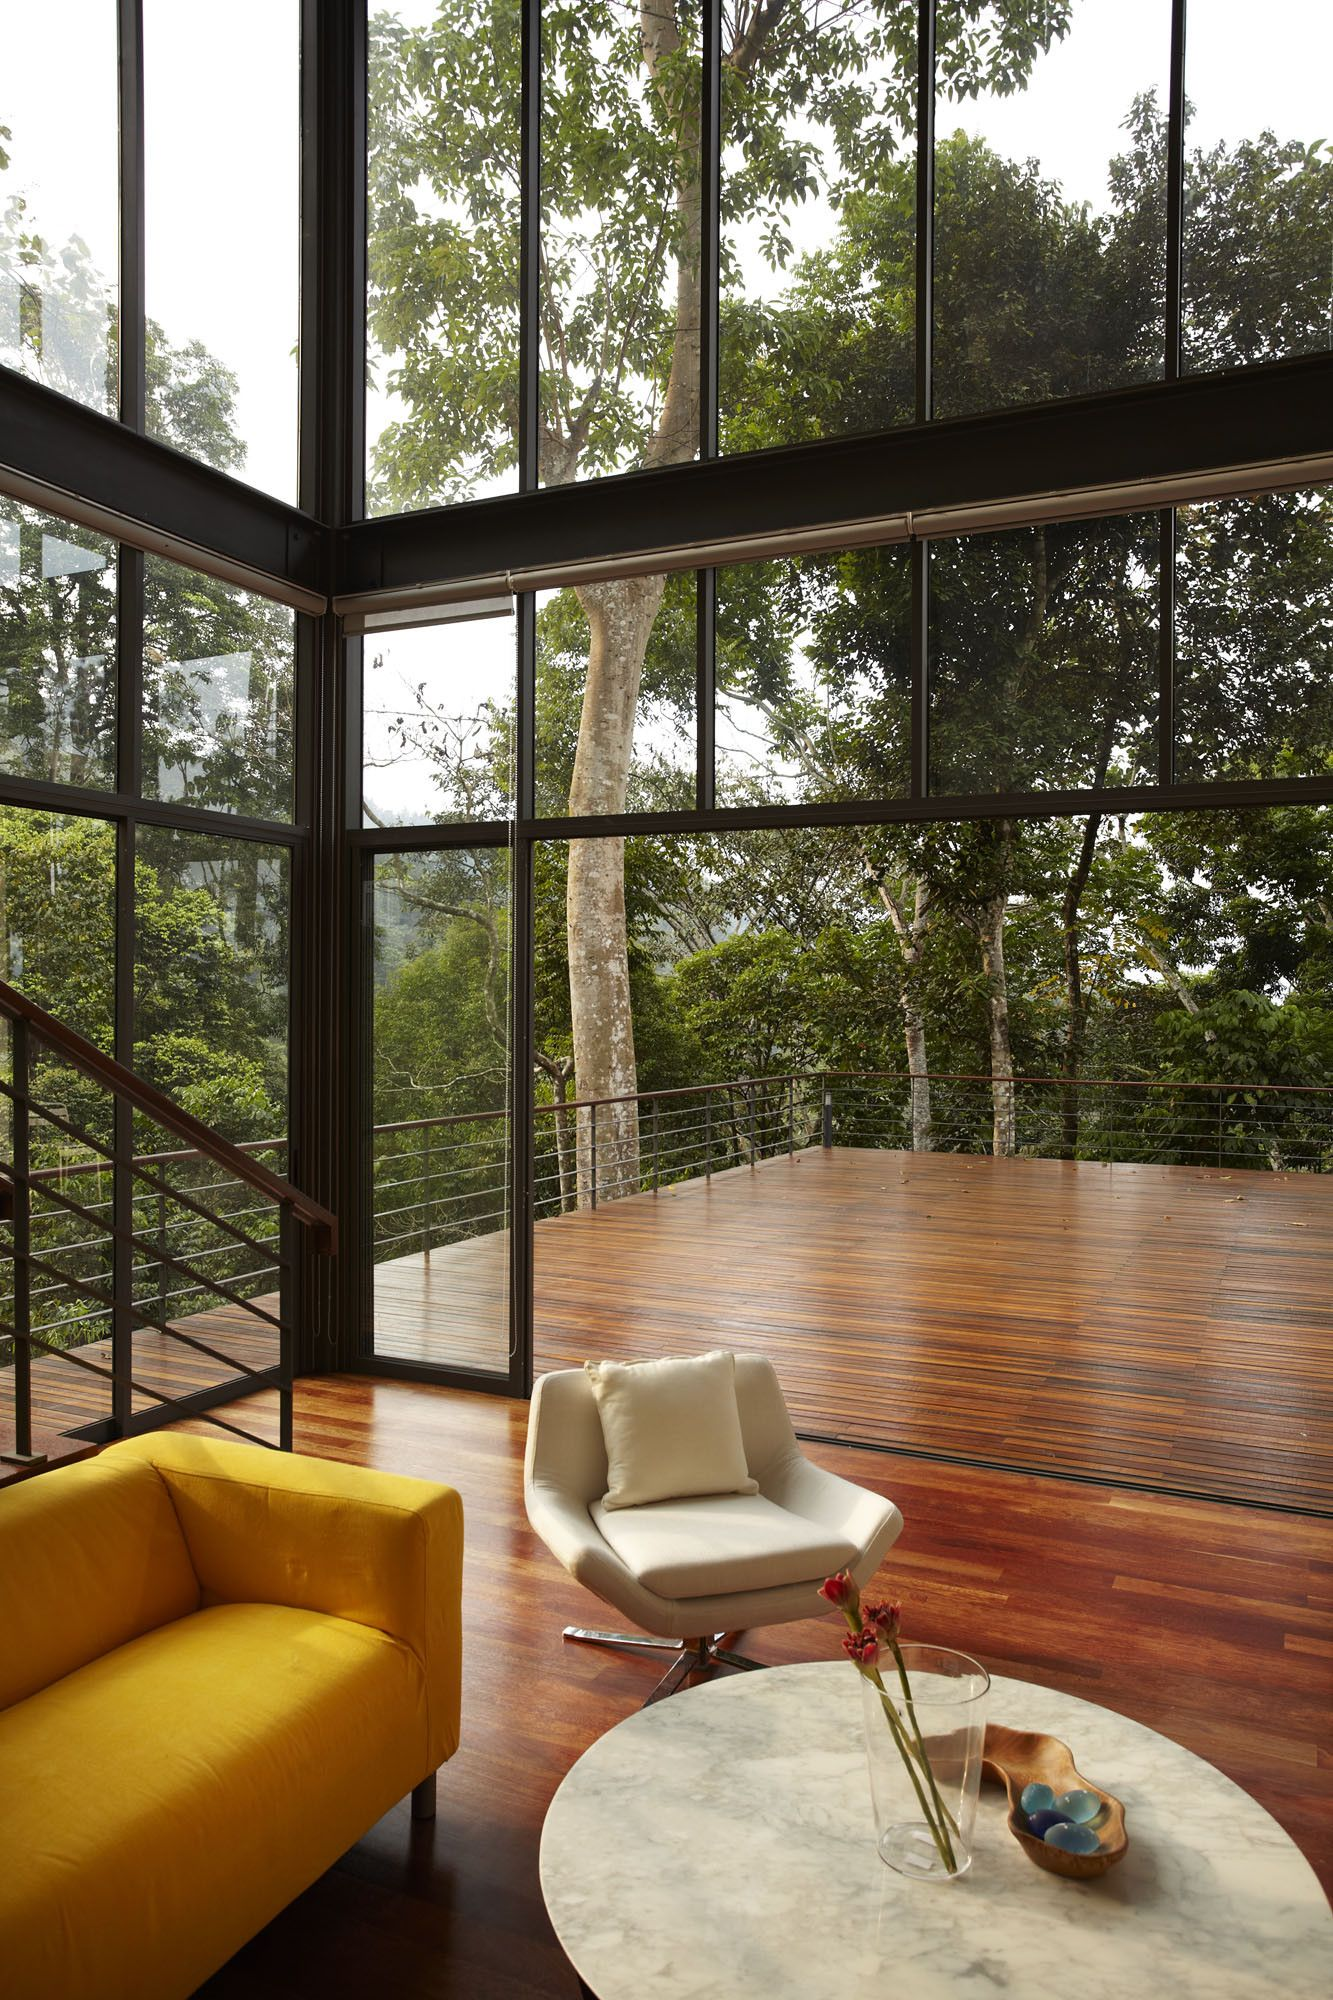 Interesting House Exterior Design In Kulai Malaysia: Gallery Of The Deck House / Choo Gim Wah Architect - 25